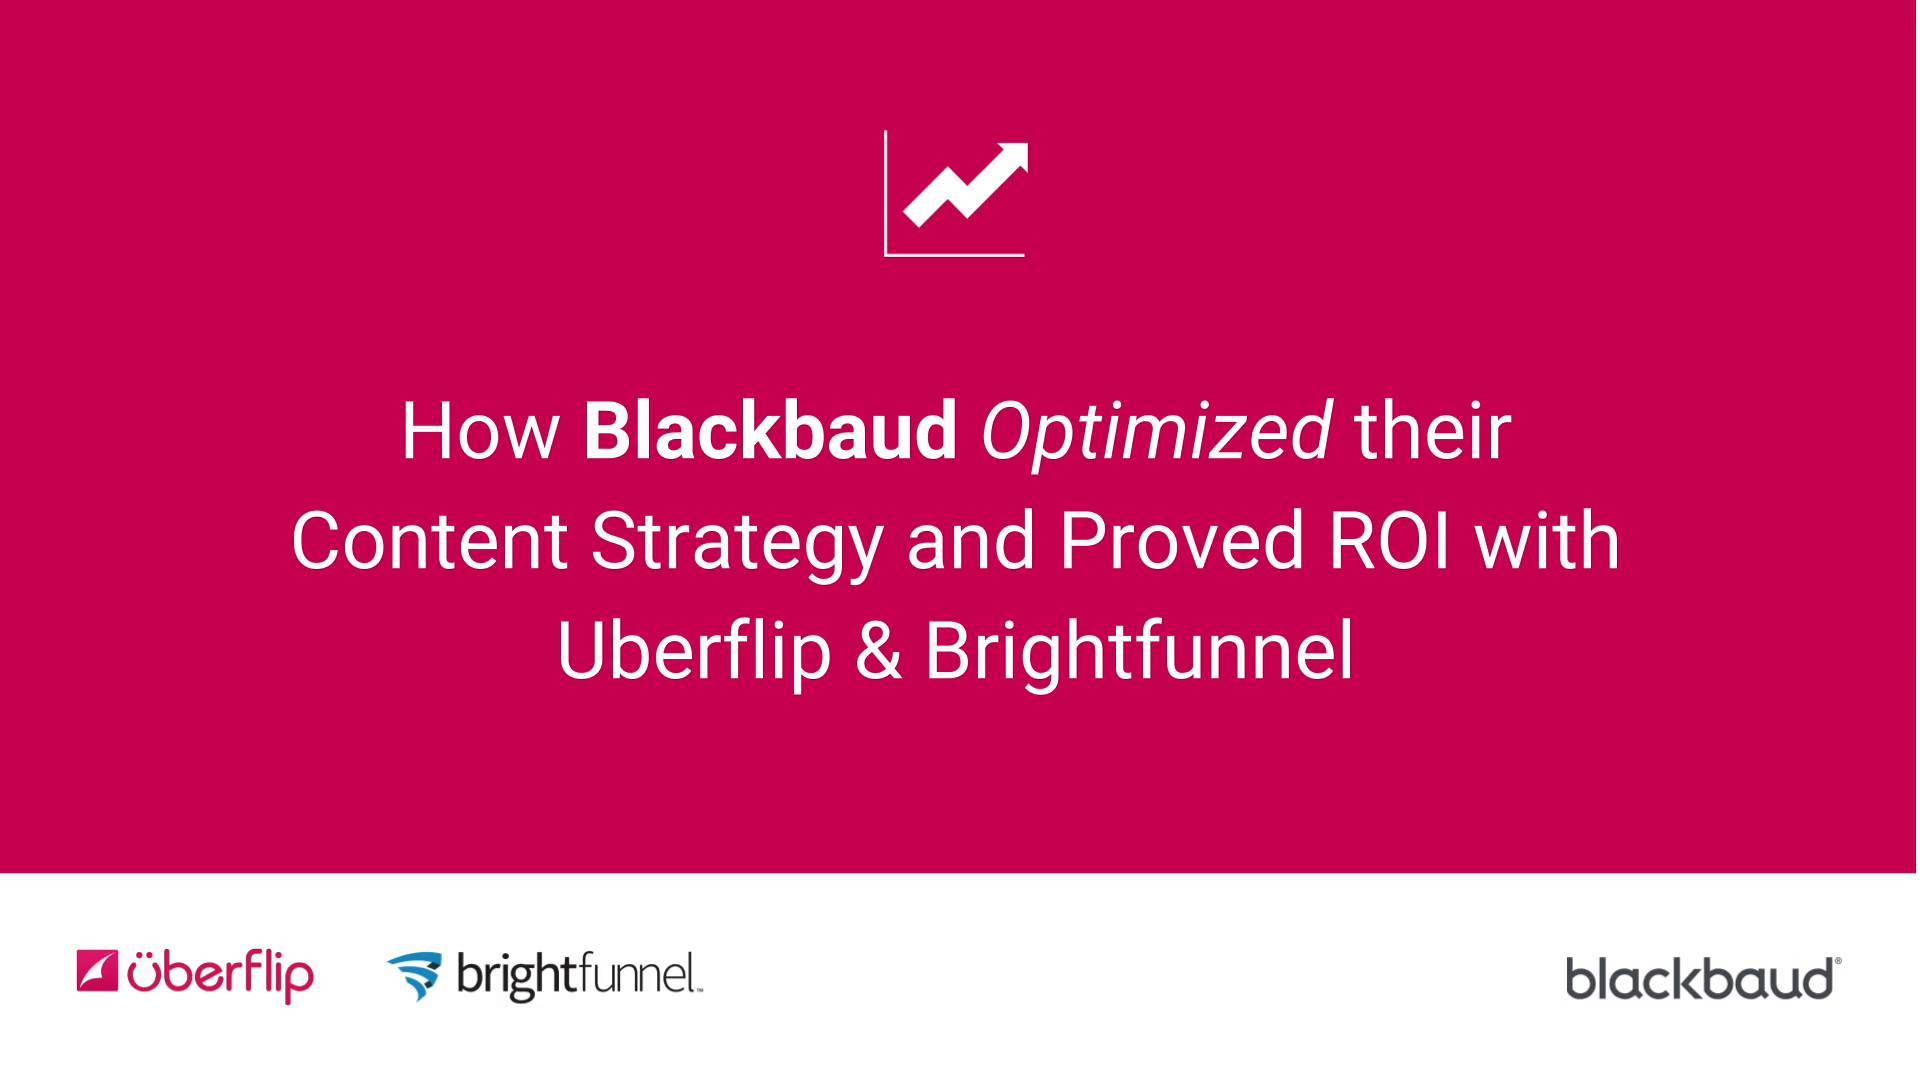 How Blackbaud Optimized their Content Strategy and Proved ROI 1920x1080